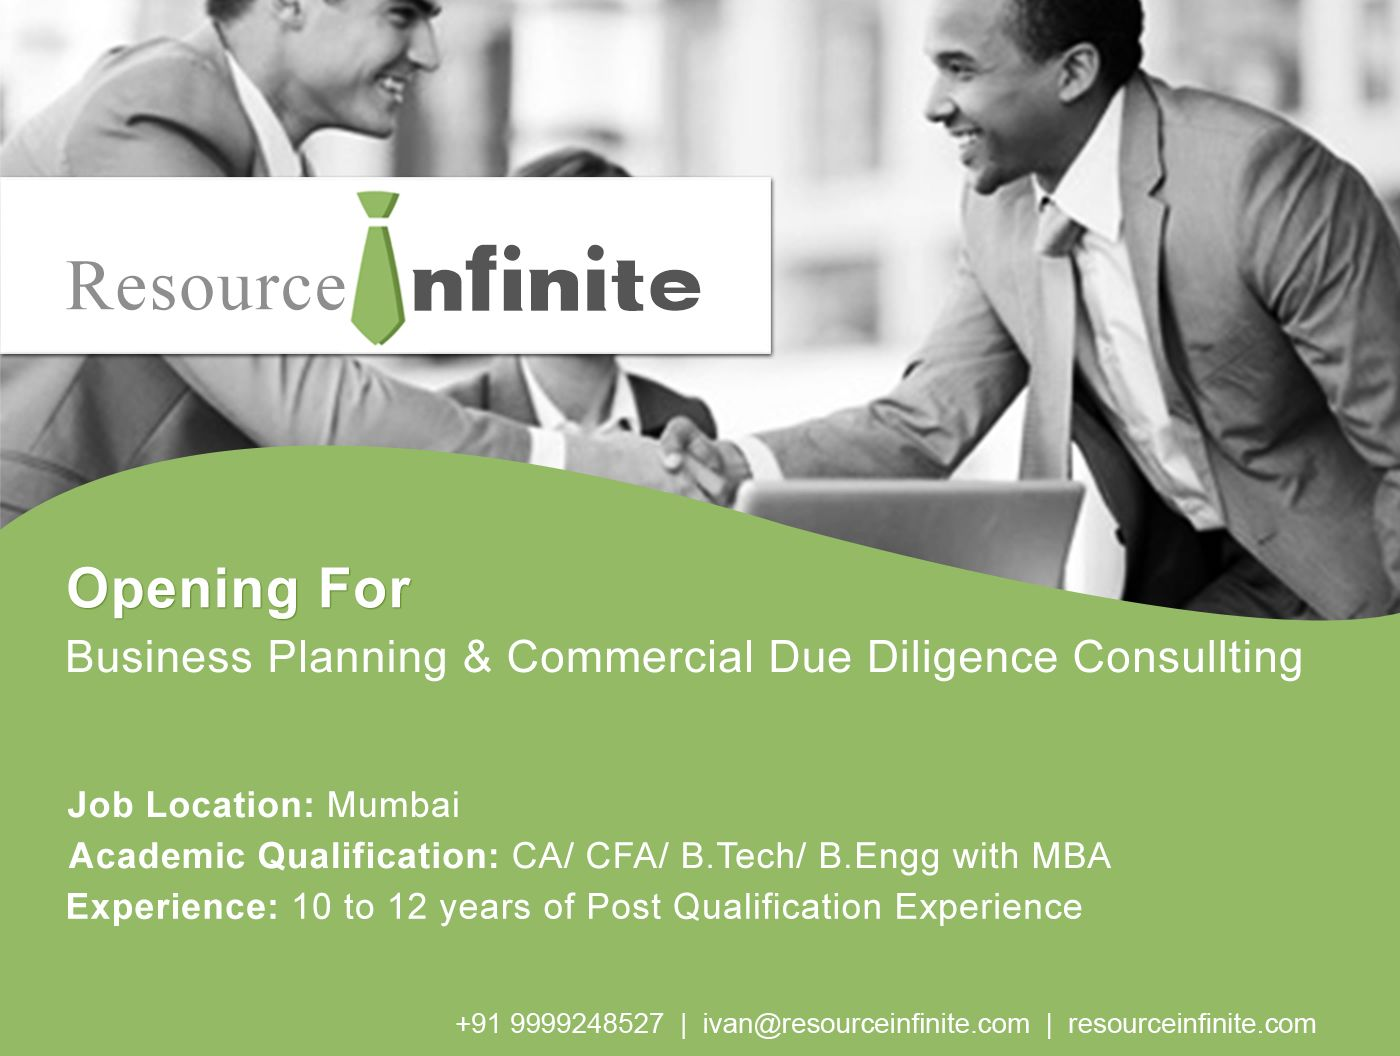 resourceinfinite jobs An established CDD Consultingfirm